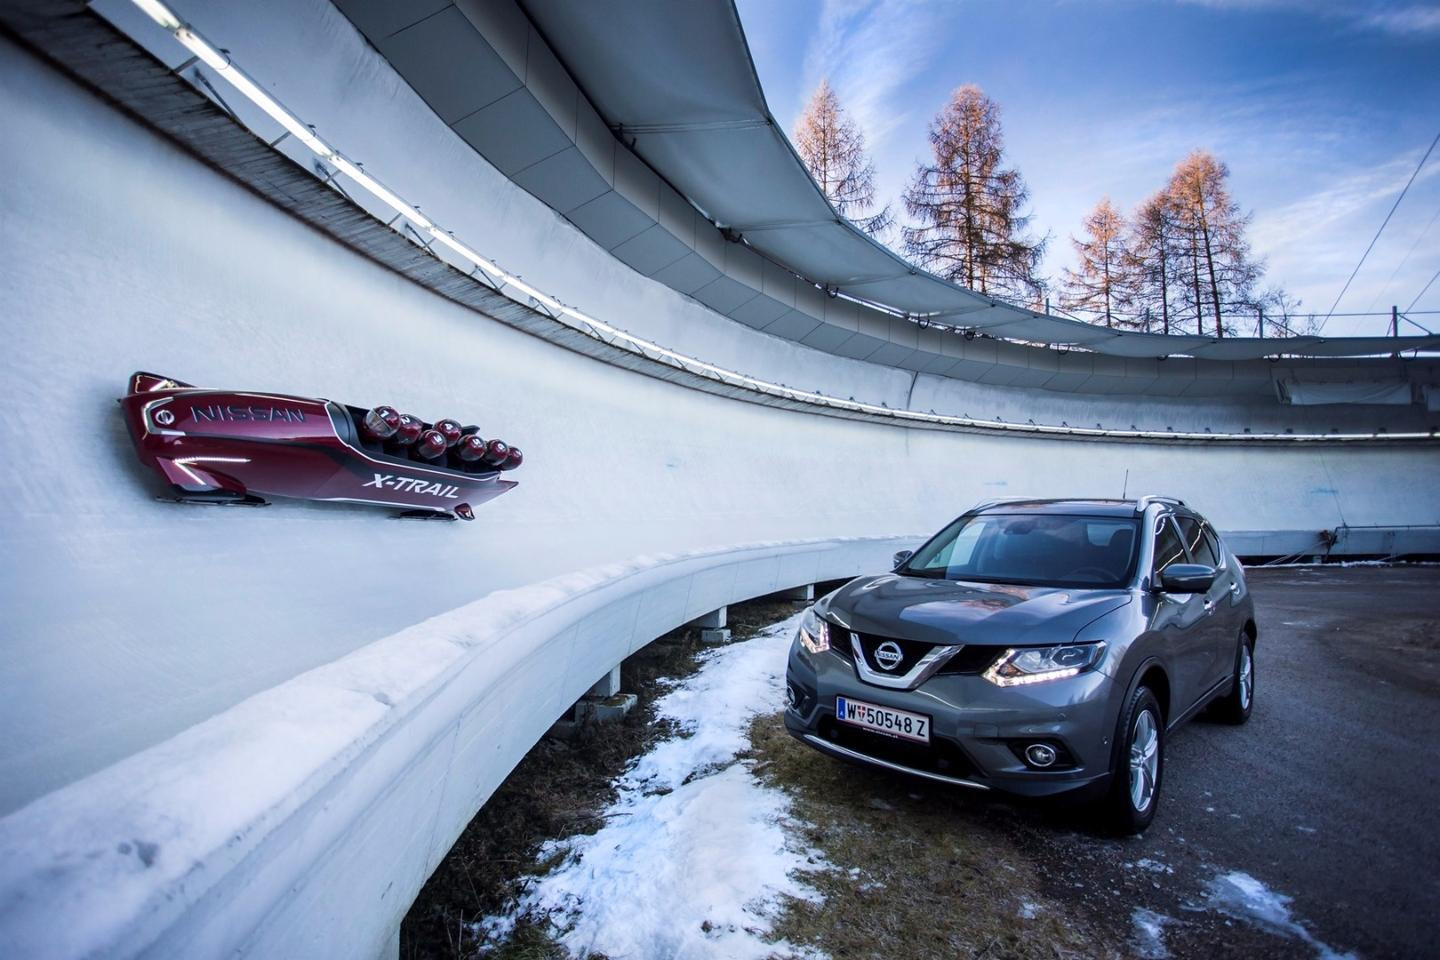 The X-Trail Bobsleigh can accelerate from 0-62 mph (0-100 km/h) in 30 seconds and tops out at 65 mph (105 km/h)